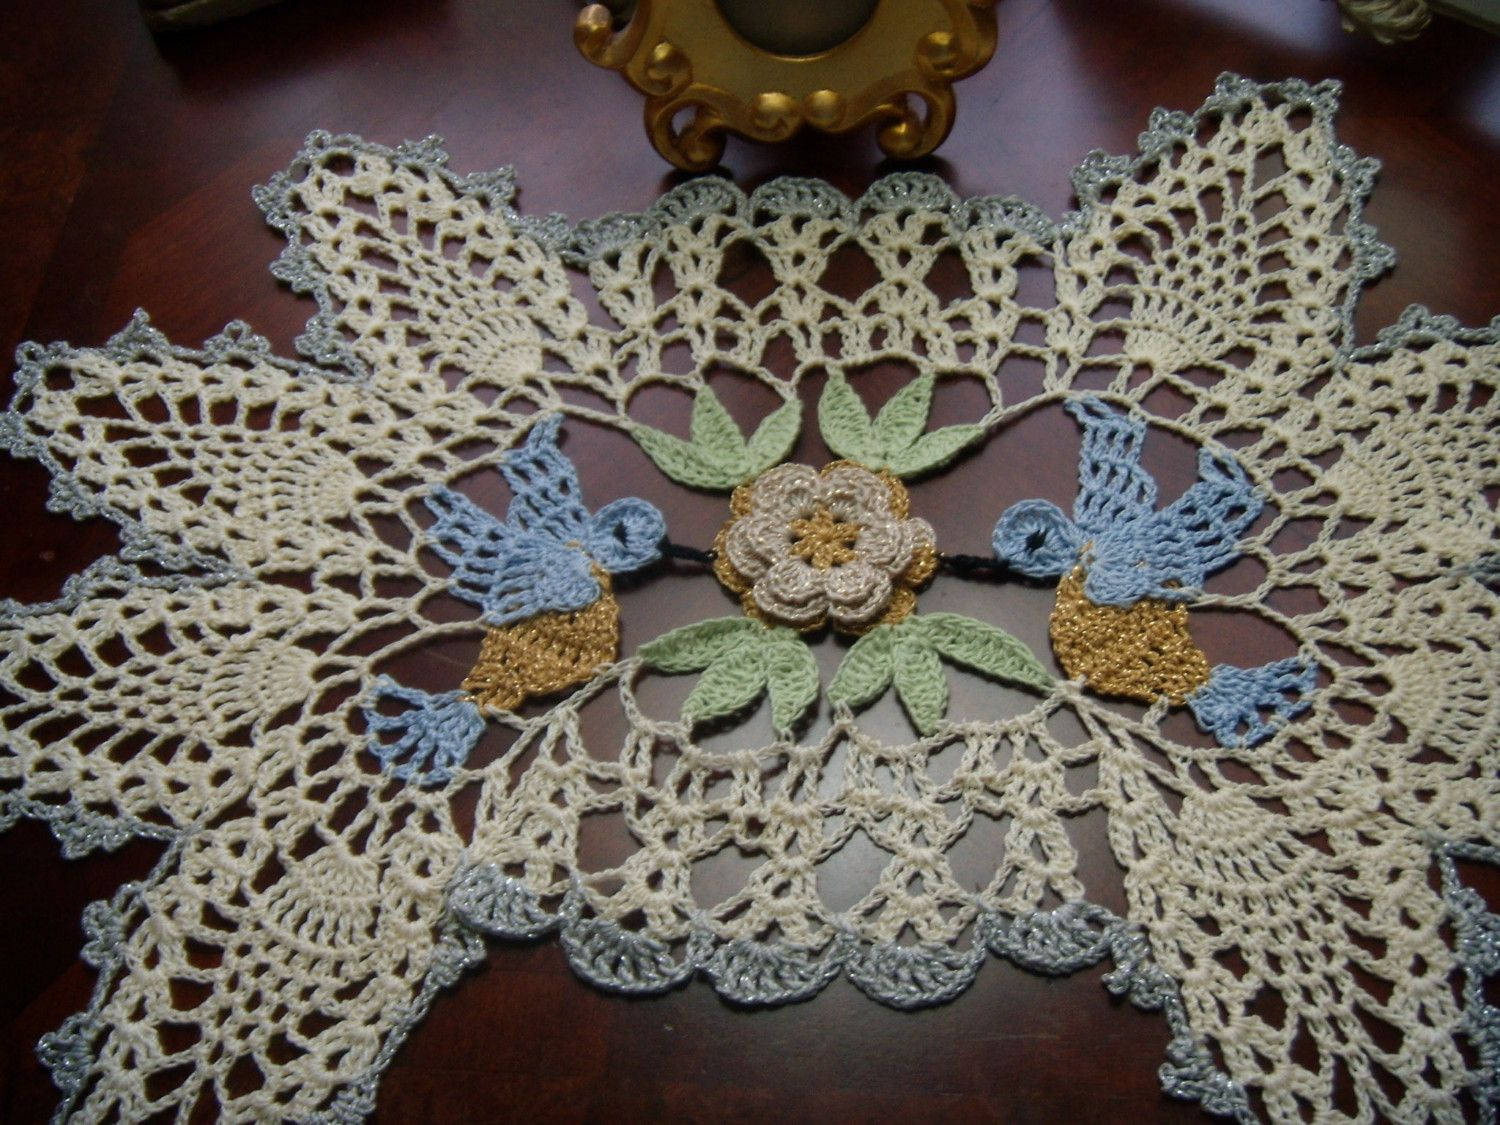 blue birds silver and gold hand crochet doily runner r h t animal pinterest. Black Bedroom Furniture Sets. Home Design Ideas